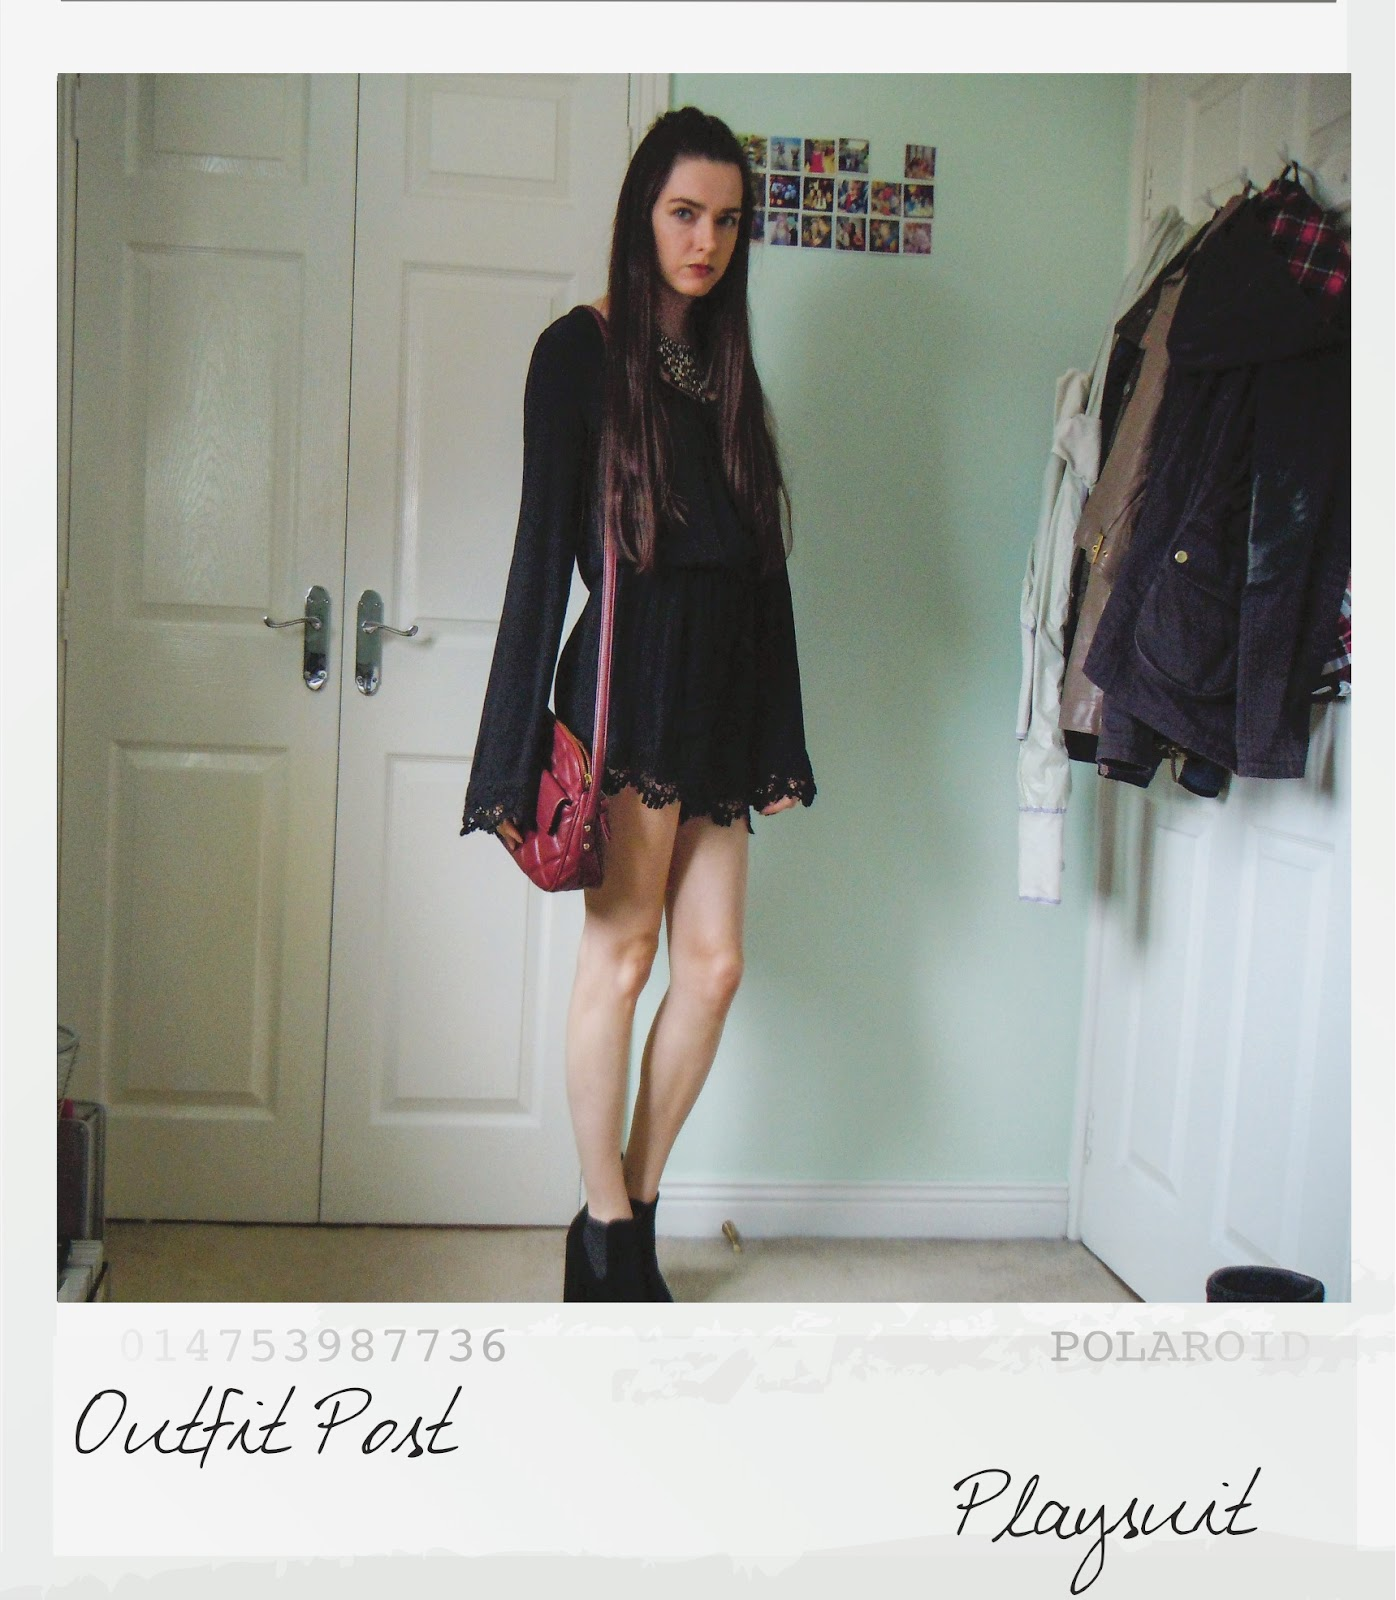 http://www.kellysjournal.co.uk/2014/10/outfit-post-32-little-black-playsuit.html#more